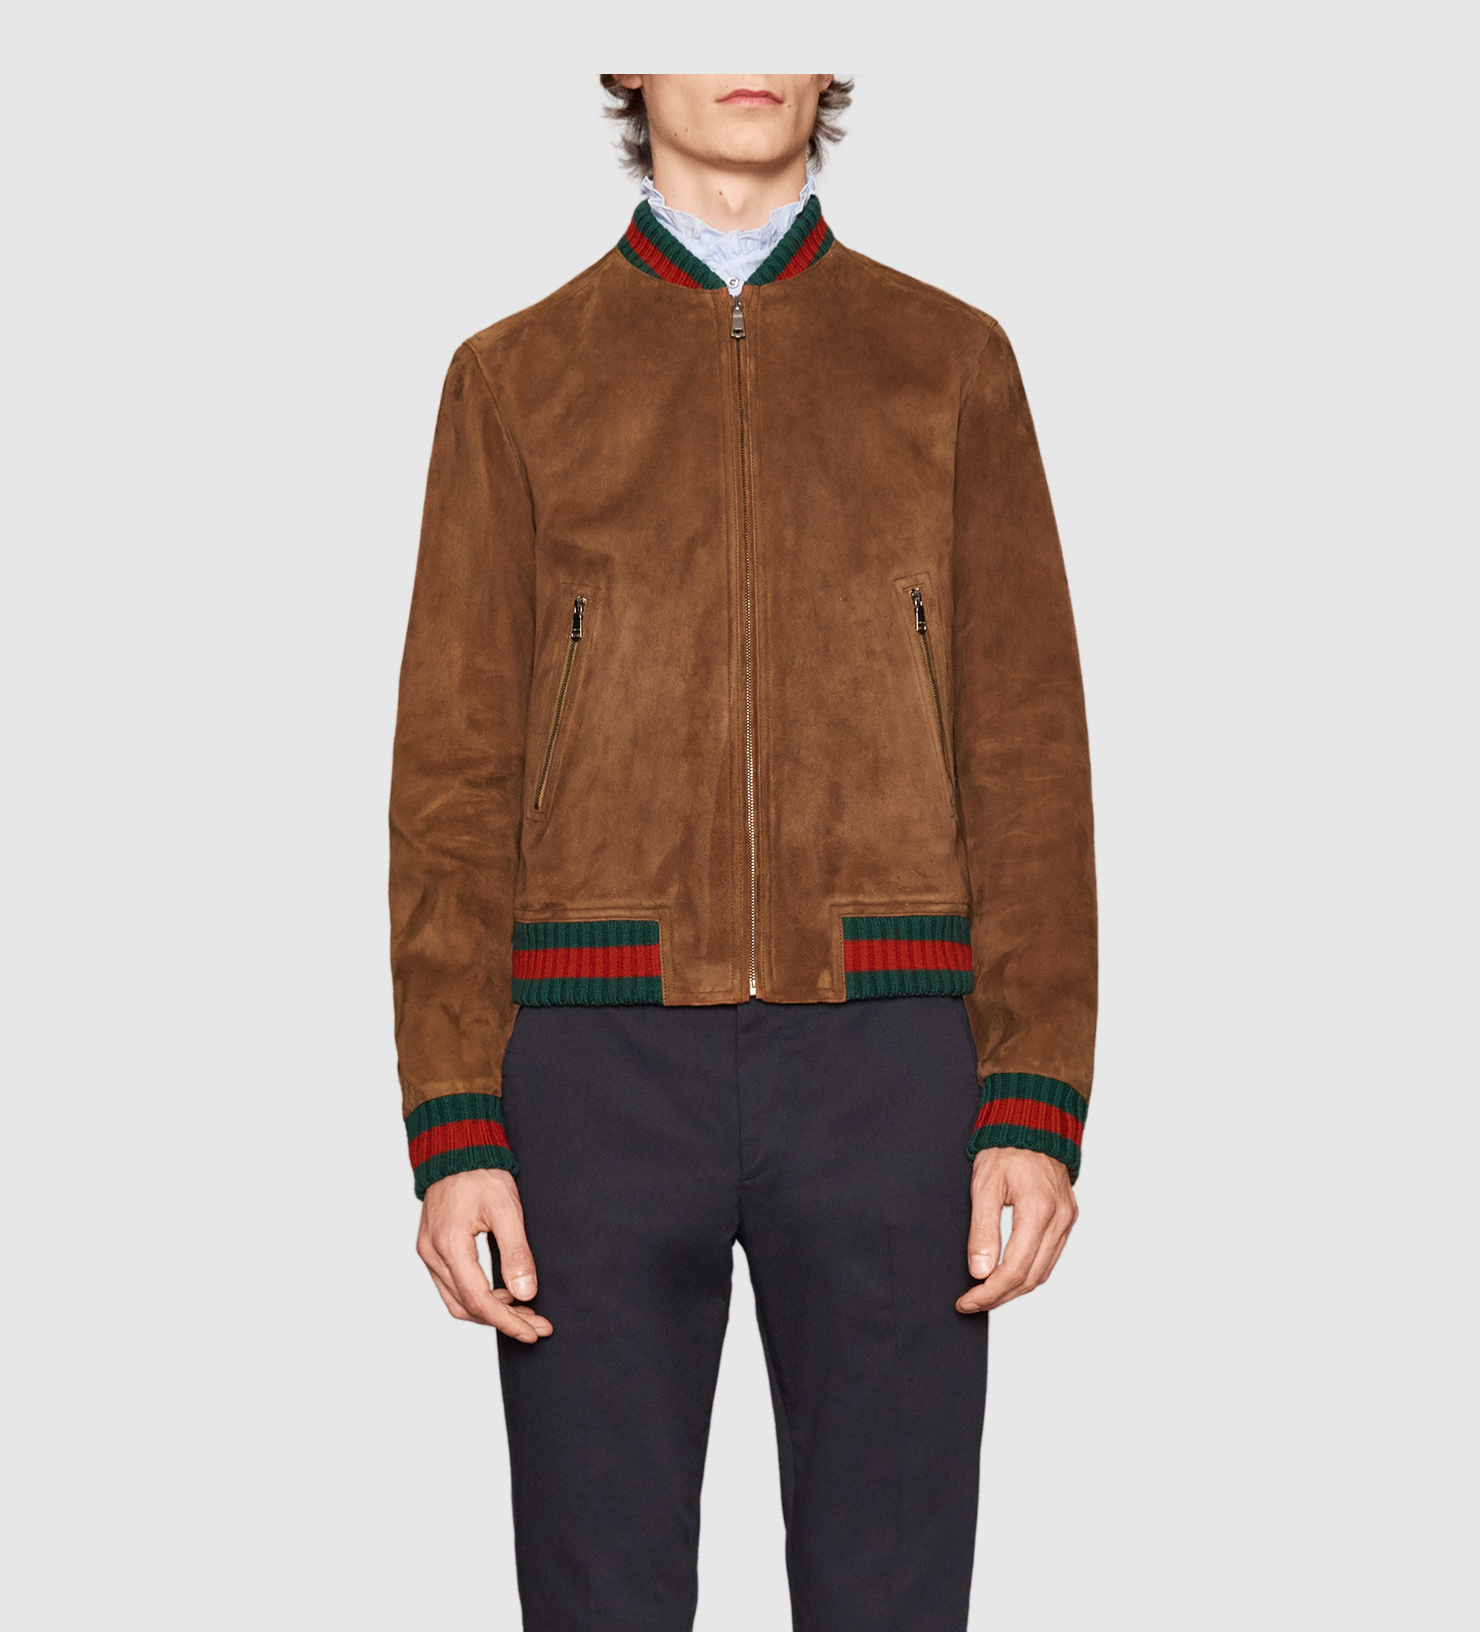 ea27406ee879 Gucci Suede Jacket With Web in Brown for Men - Lyst